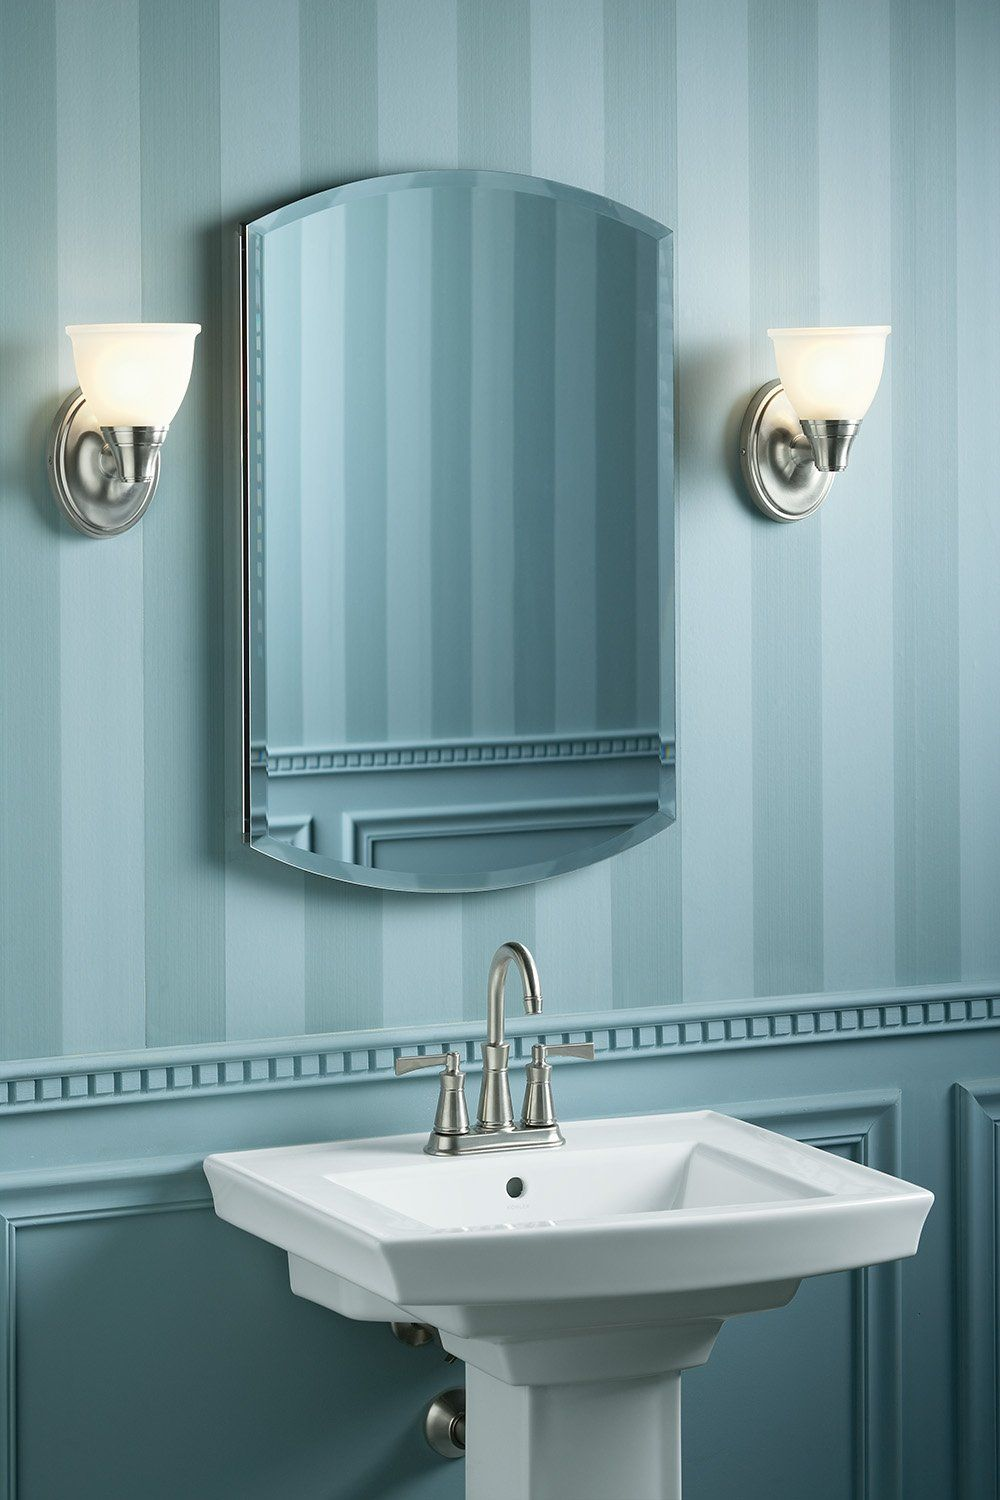 KOHLER K-3073-NA Archer Mirrored Cabinet - Appliance Replacement ...